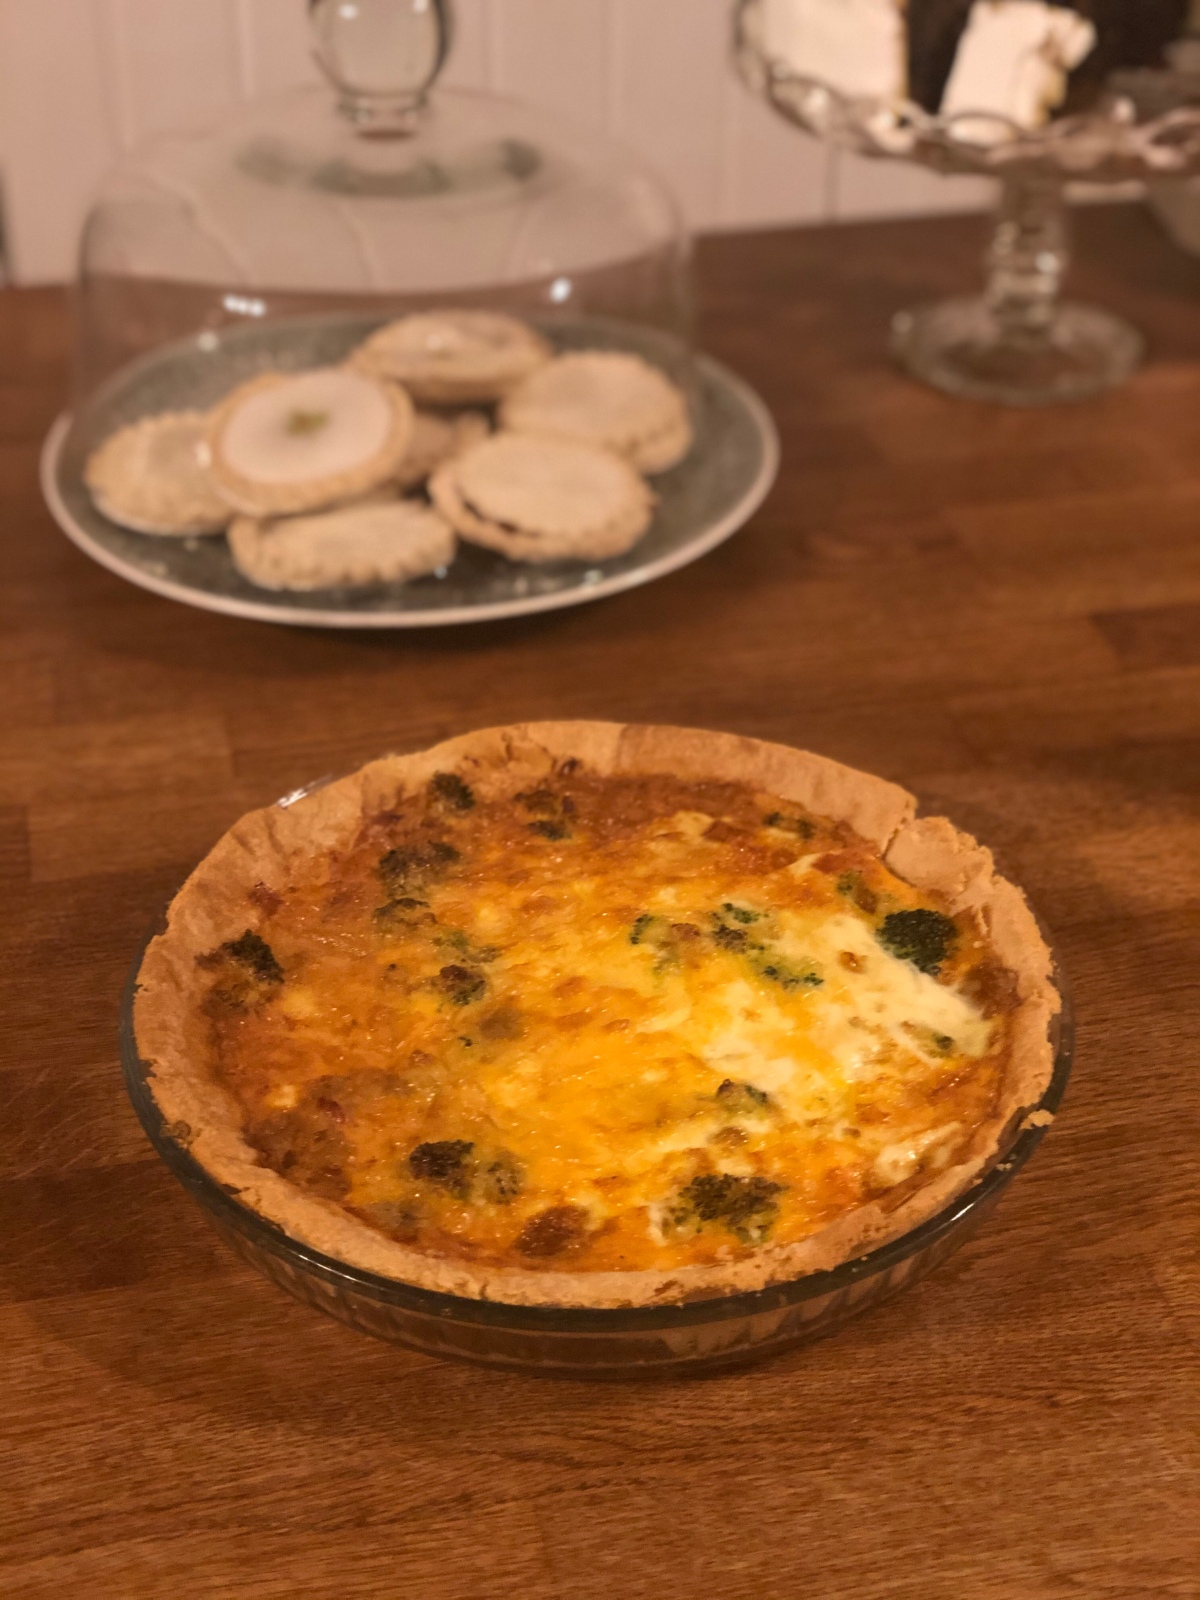 Not sure what to cook? Try this simple quiche made from leftovers